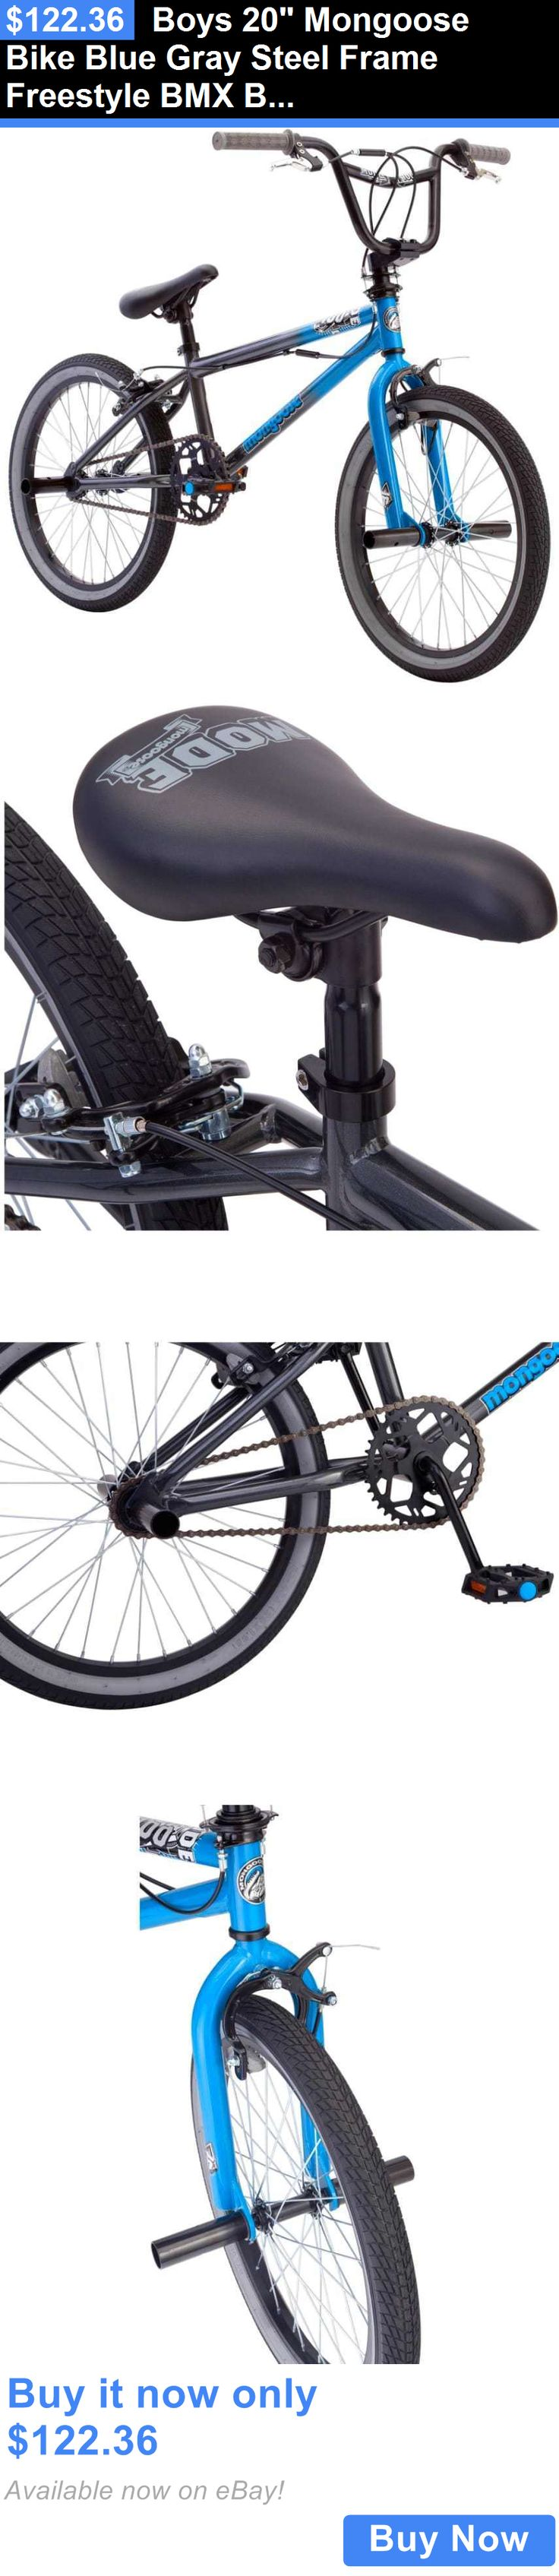 bicycles: Boys 20 Mongoose Bike Blue Gray Steel Frame Freestyle Bmx Bicycle Ride New BUY IT NOW ONLY: $122.36